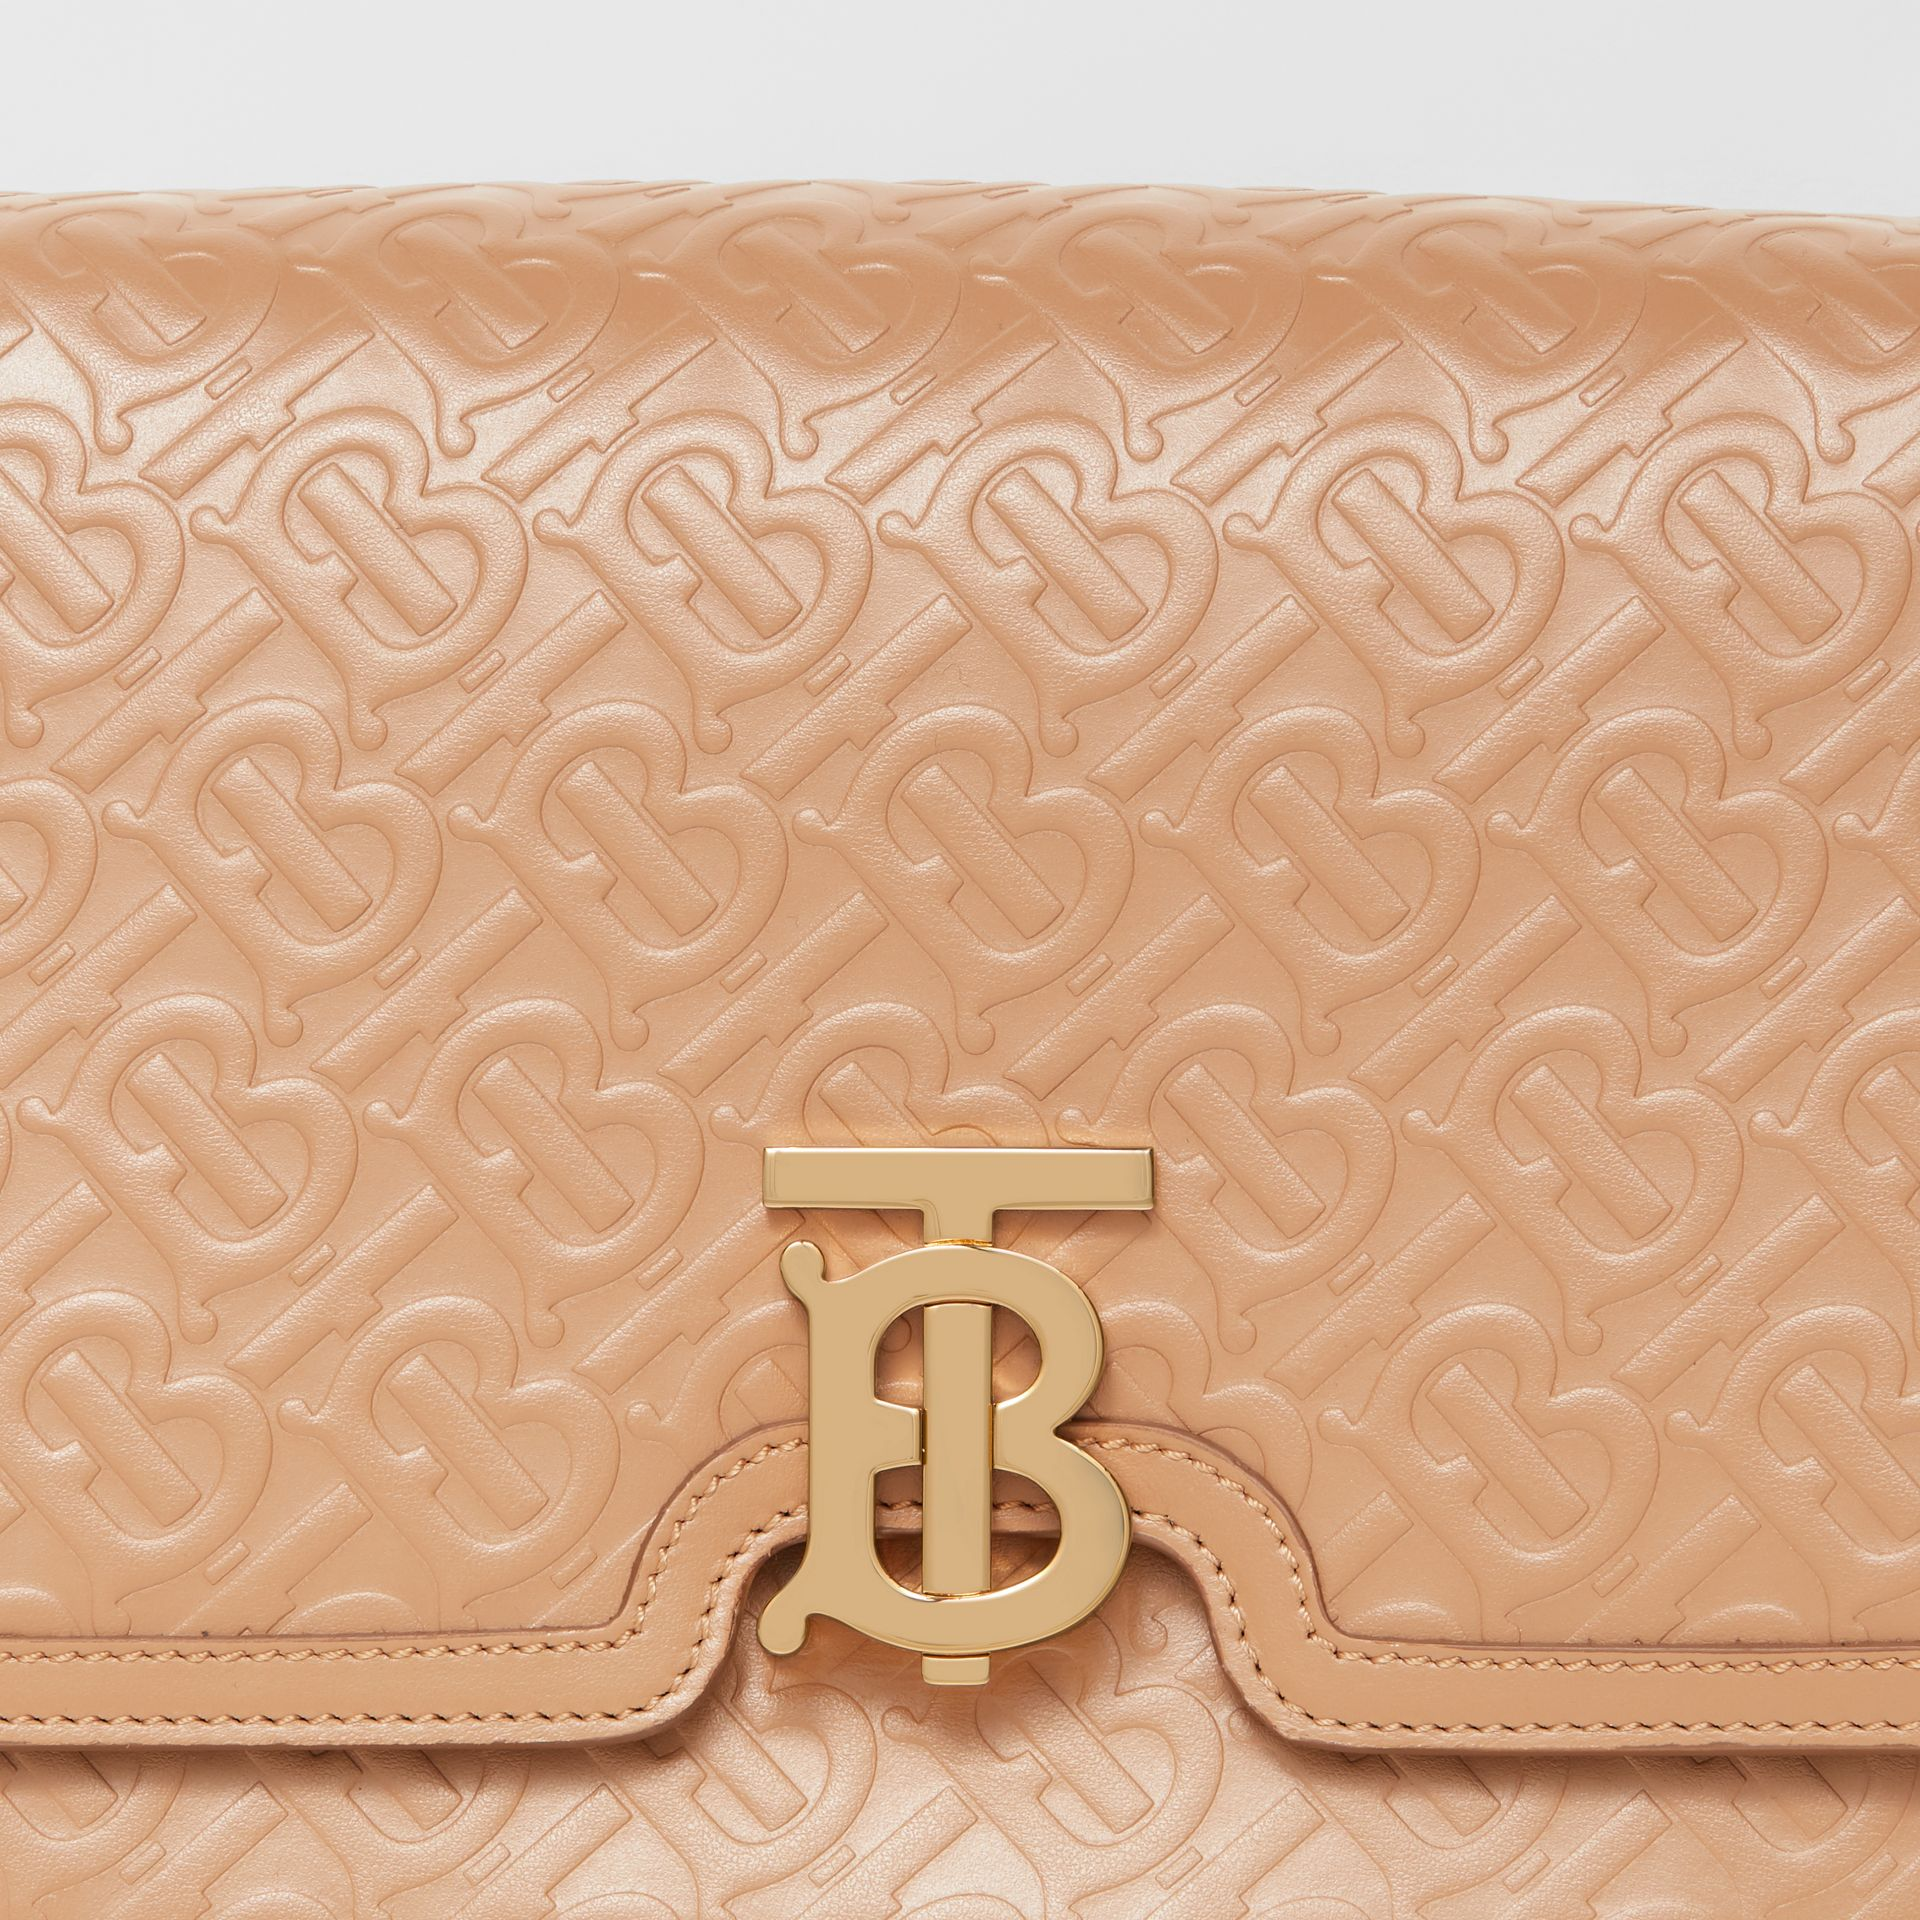 Medium Monogram Leather TB Bag in Light Camel - Women | Burberry United Kingdom - gallery image 1